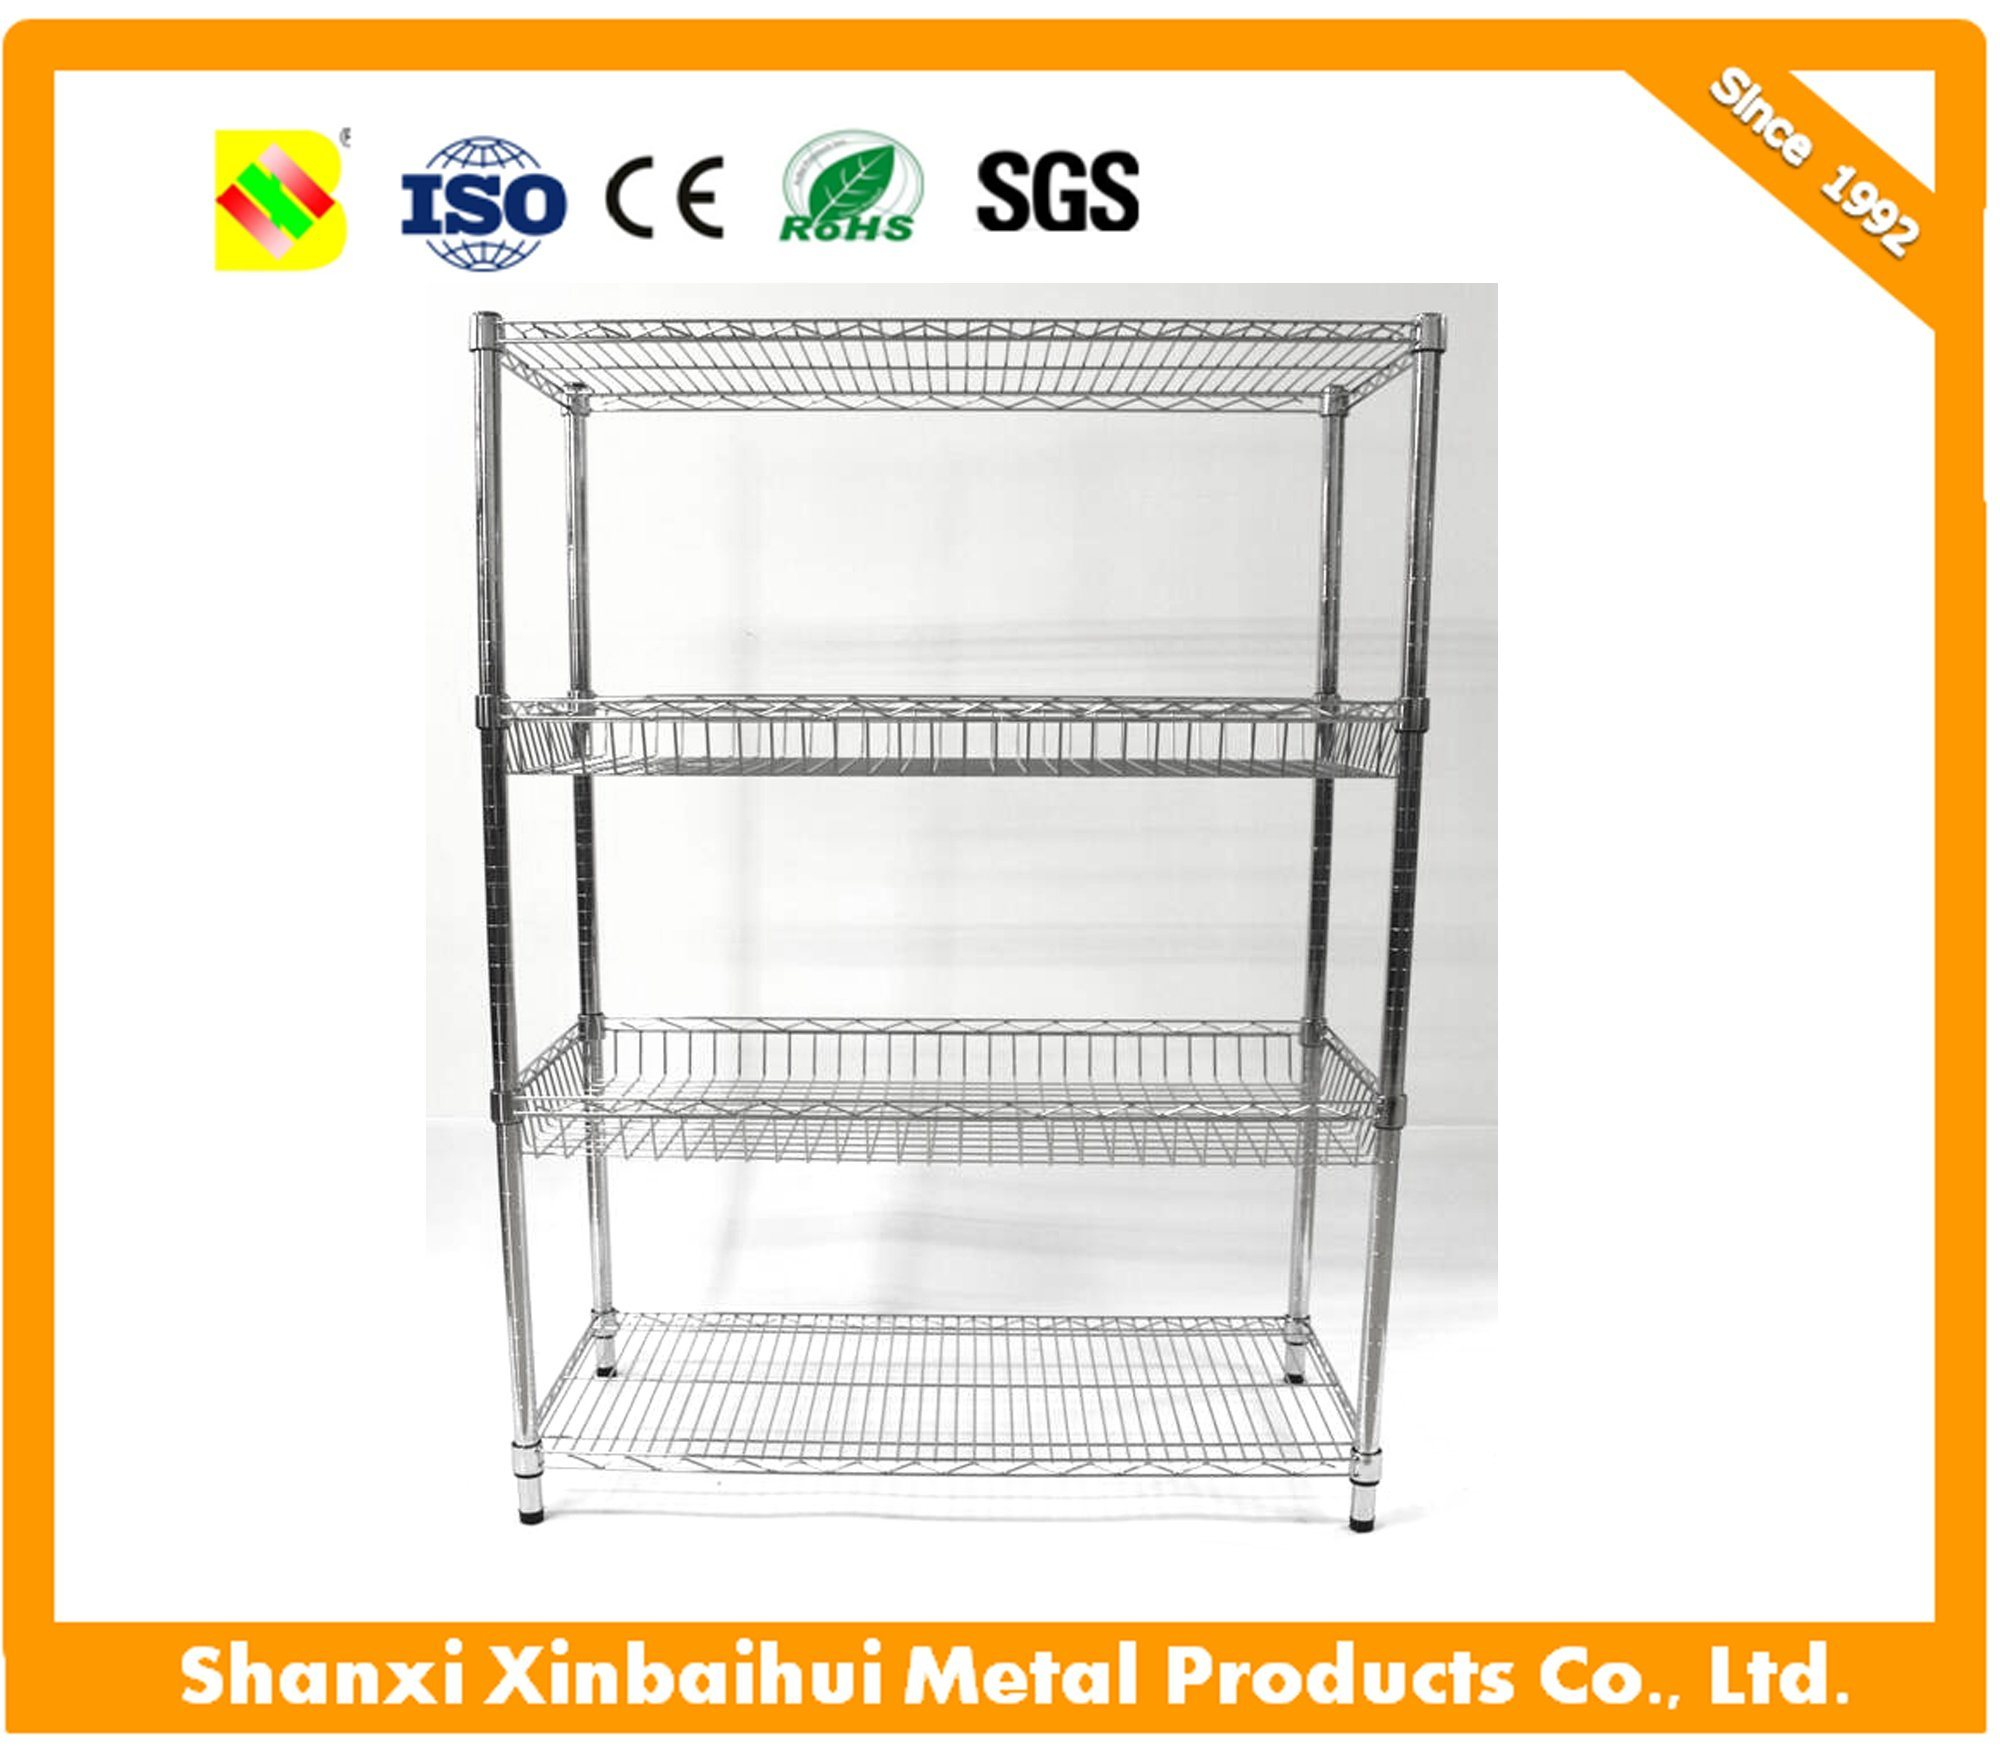 China Manufacturer Hot Selling Wire Storage Racks - China Wire ...